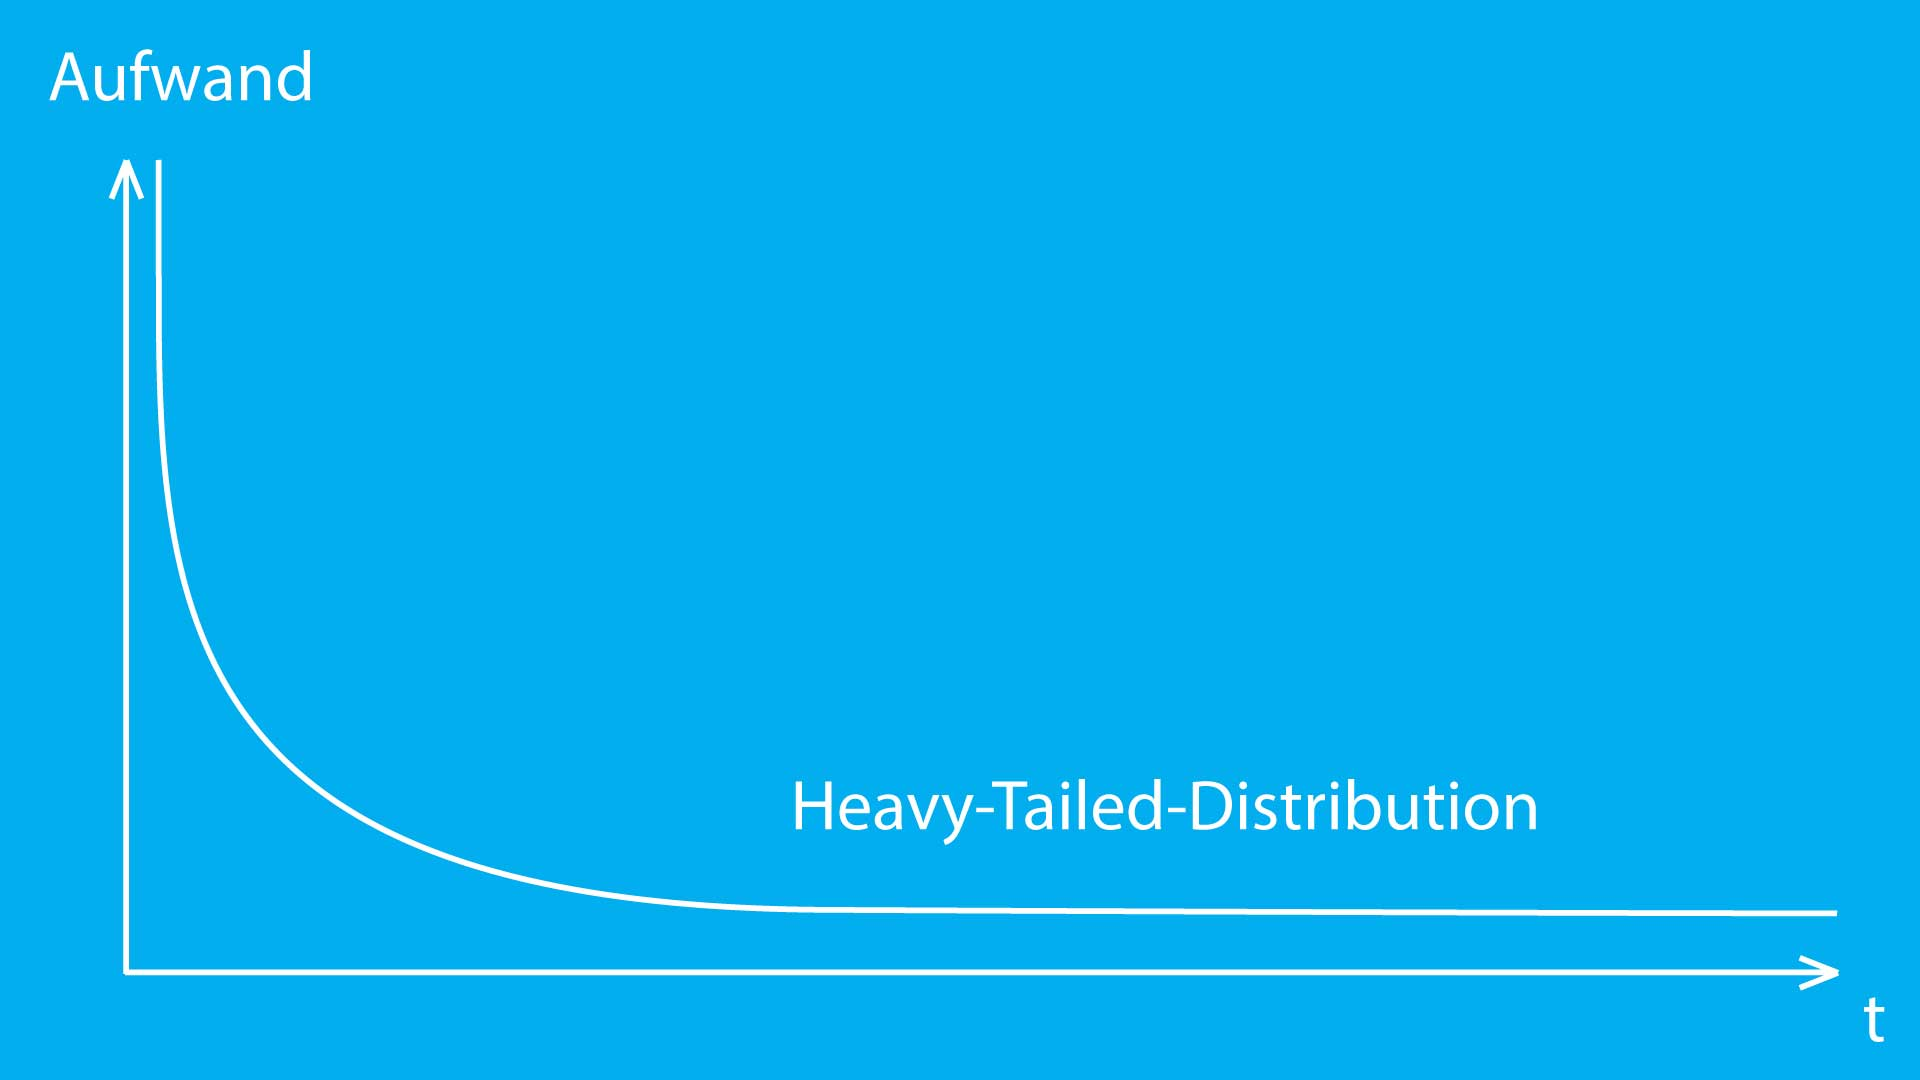 Diagramm of a Heavy Tailed Distribution